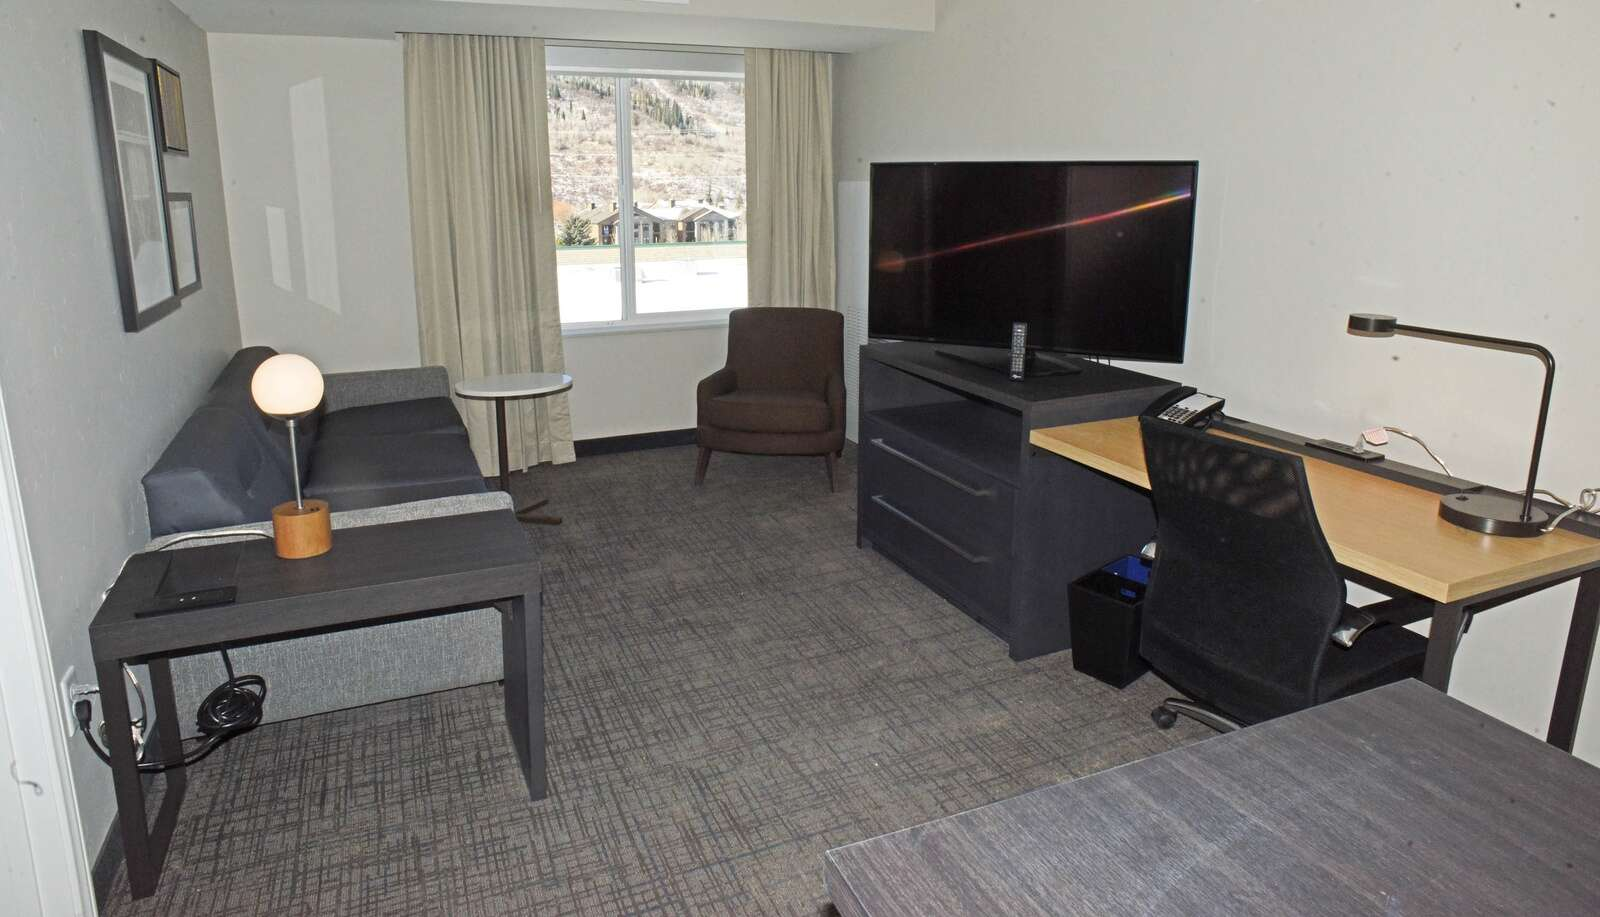 The living room inside this two-bedroom suite at the new Residence Inn by Marriott offers space to watch television, or to check in with the office. There is also a full kitchen, and two separated bedrooms. (Photo by John F. Russell)